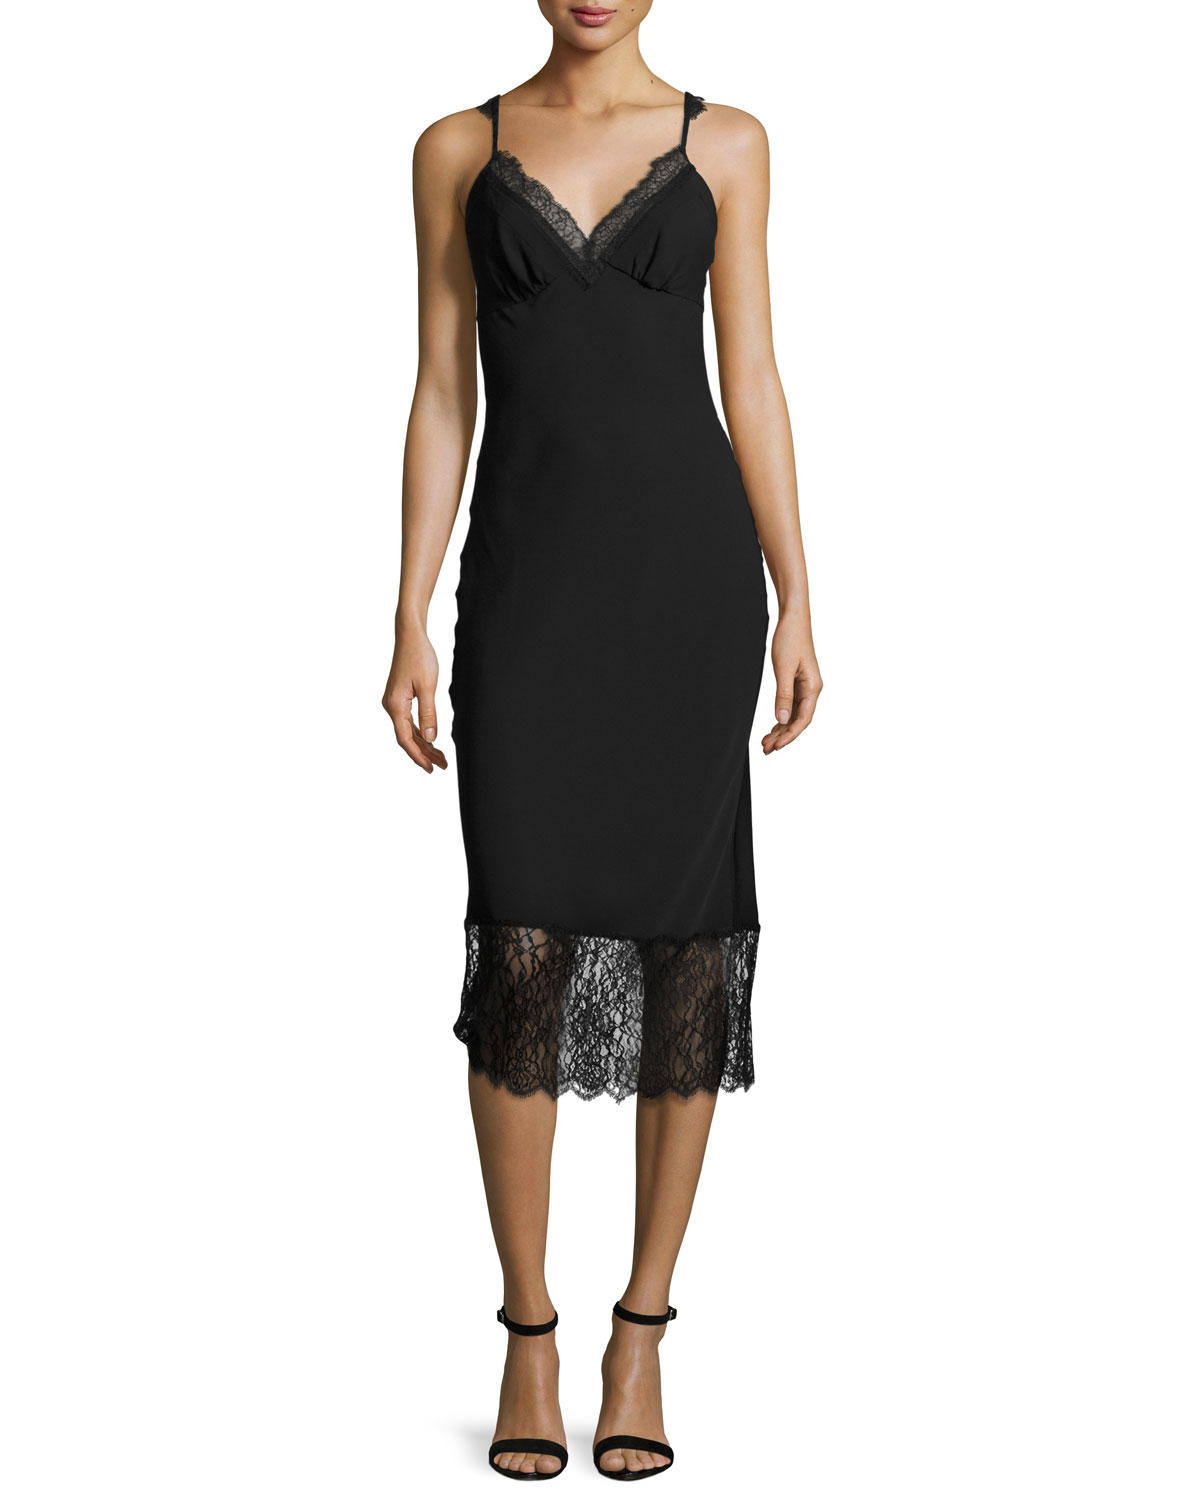 c6136775c51a0 Diane von Furstenberg Margarit Lace-Trim Slip Dress, Black | Neiman ...